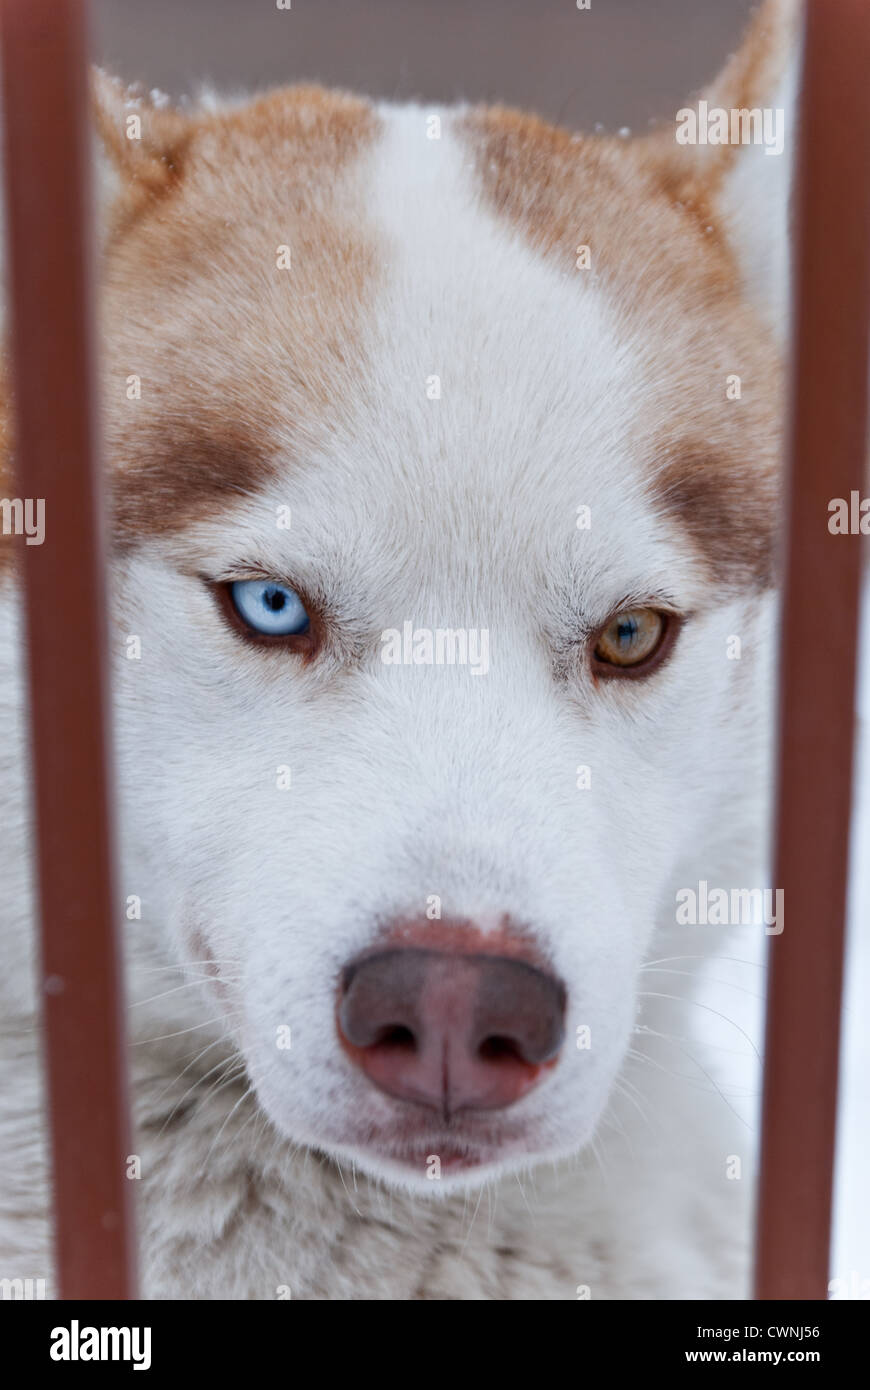 A Photograph Of Red White Colored Siberian Husky With Heterochromia